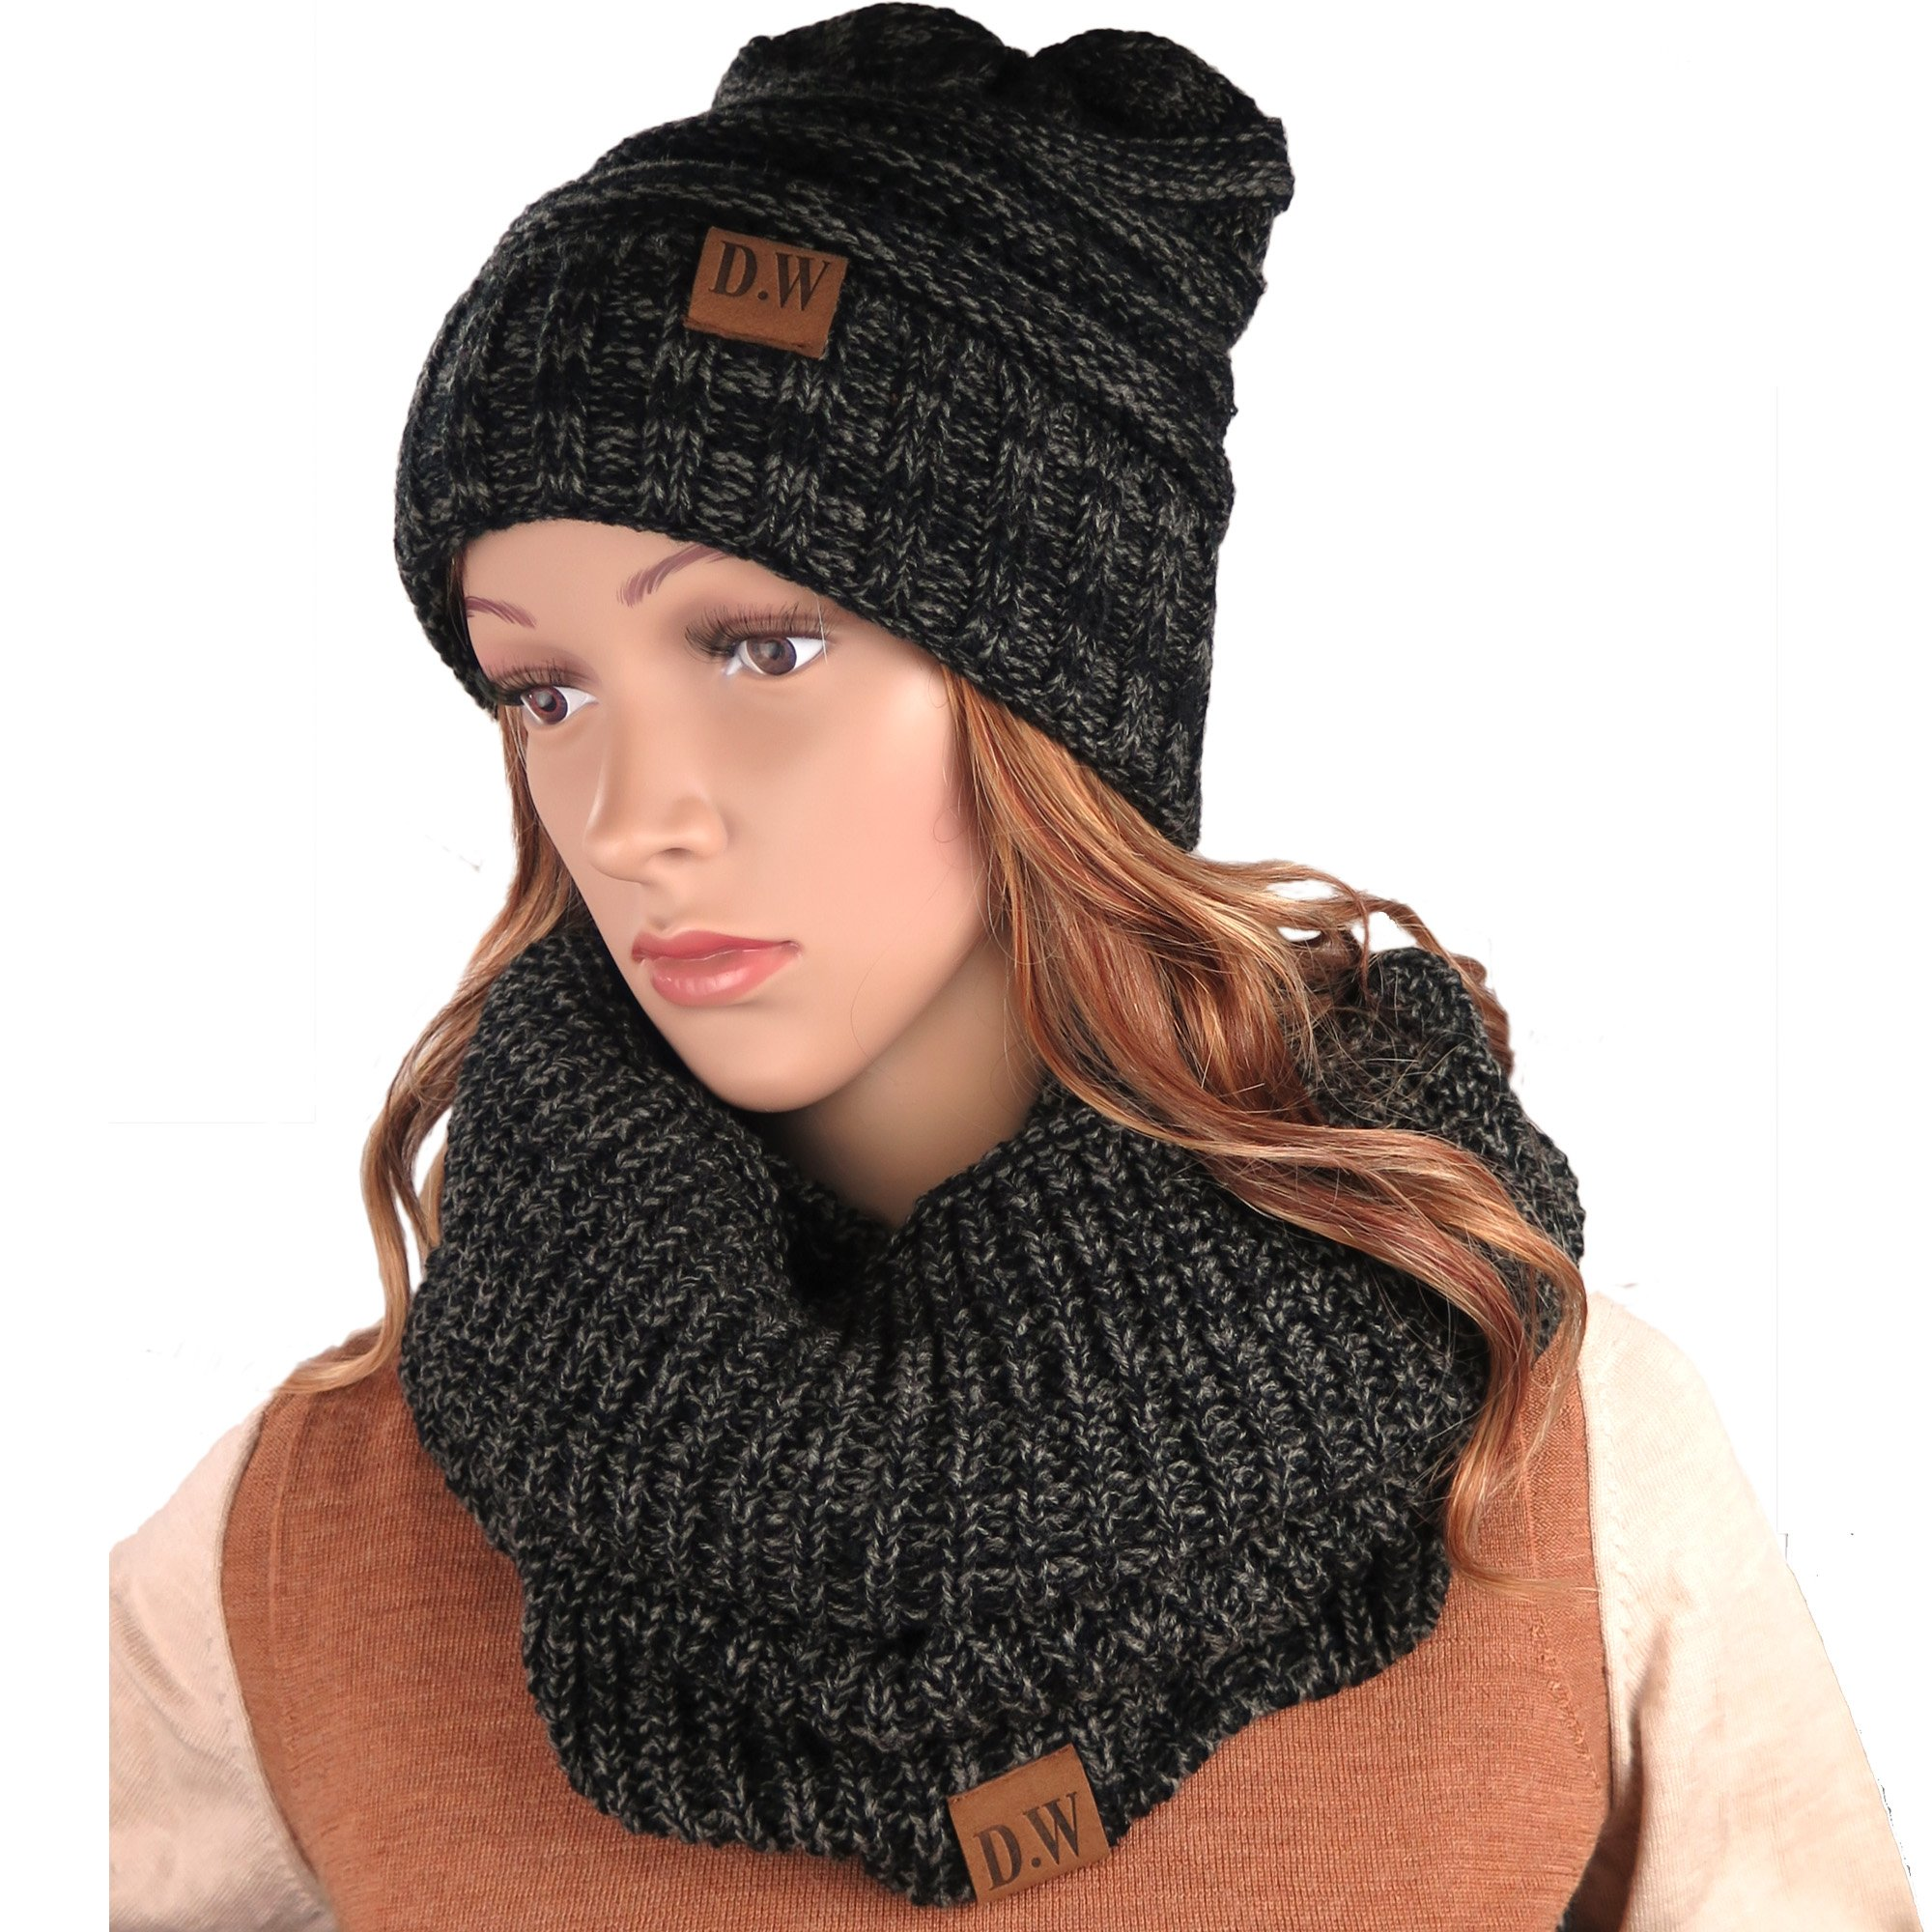 Knit Infinity Loop Scarf And Beanie Hat Set, Warm For The Winter Charcoal By Debra Weitzner